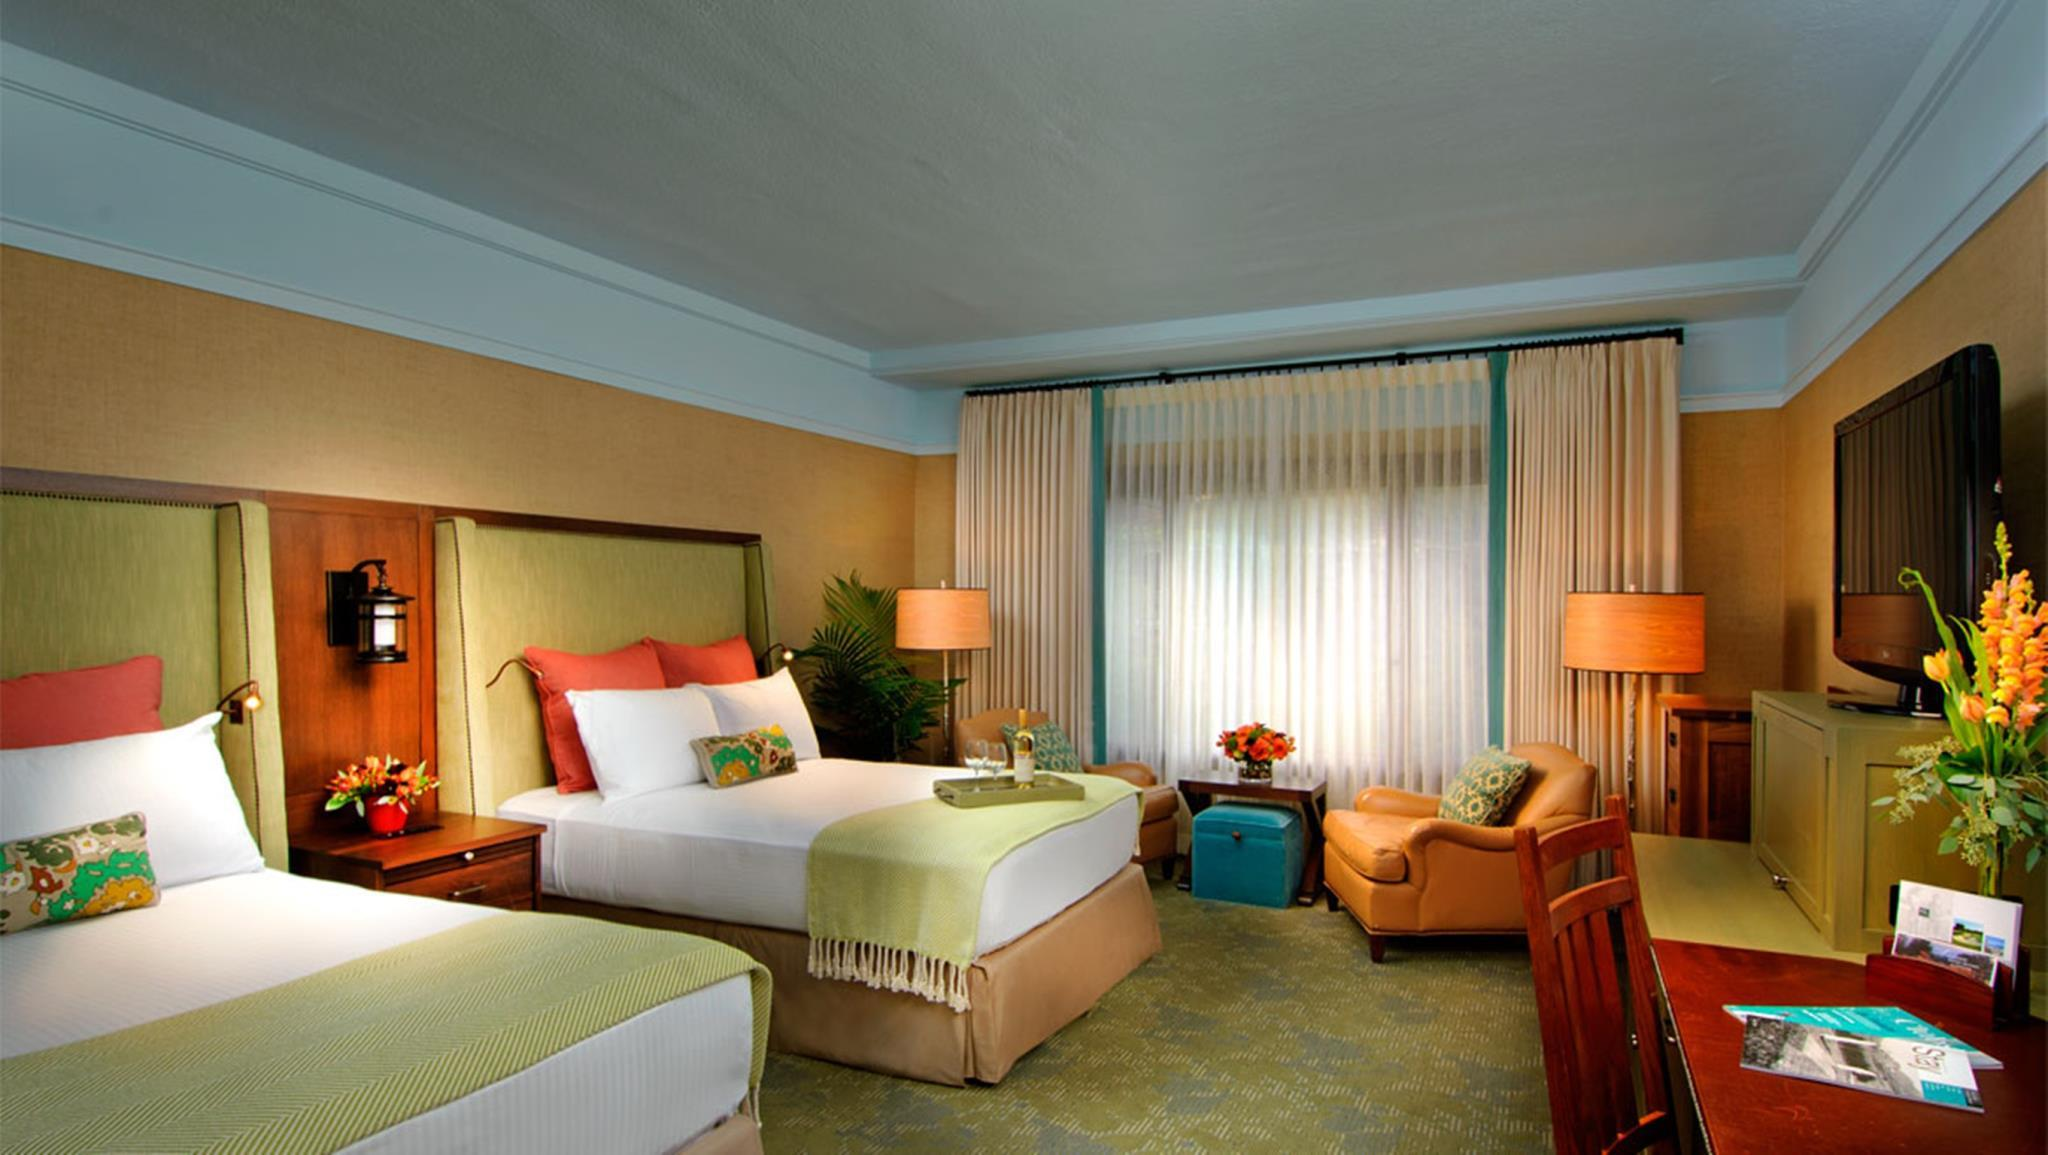 Omni grove park inn spa in asheville nc room deals - 2 bedroom suites in asheville nc ...